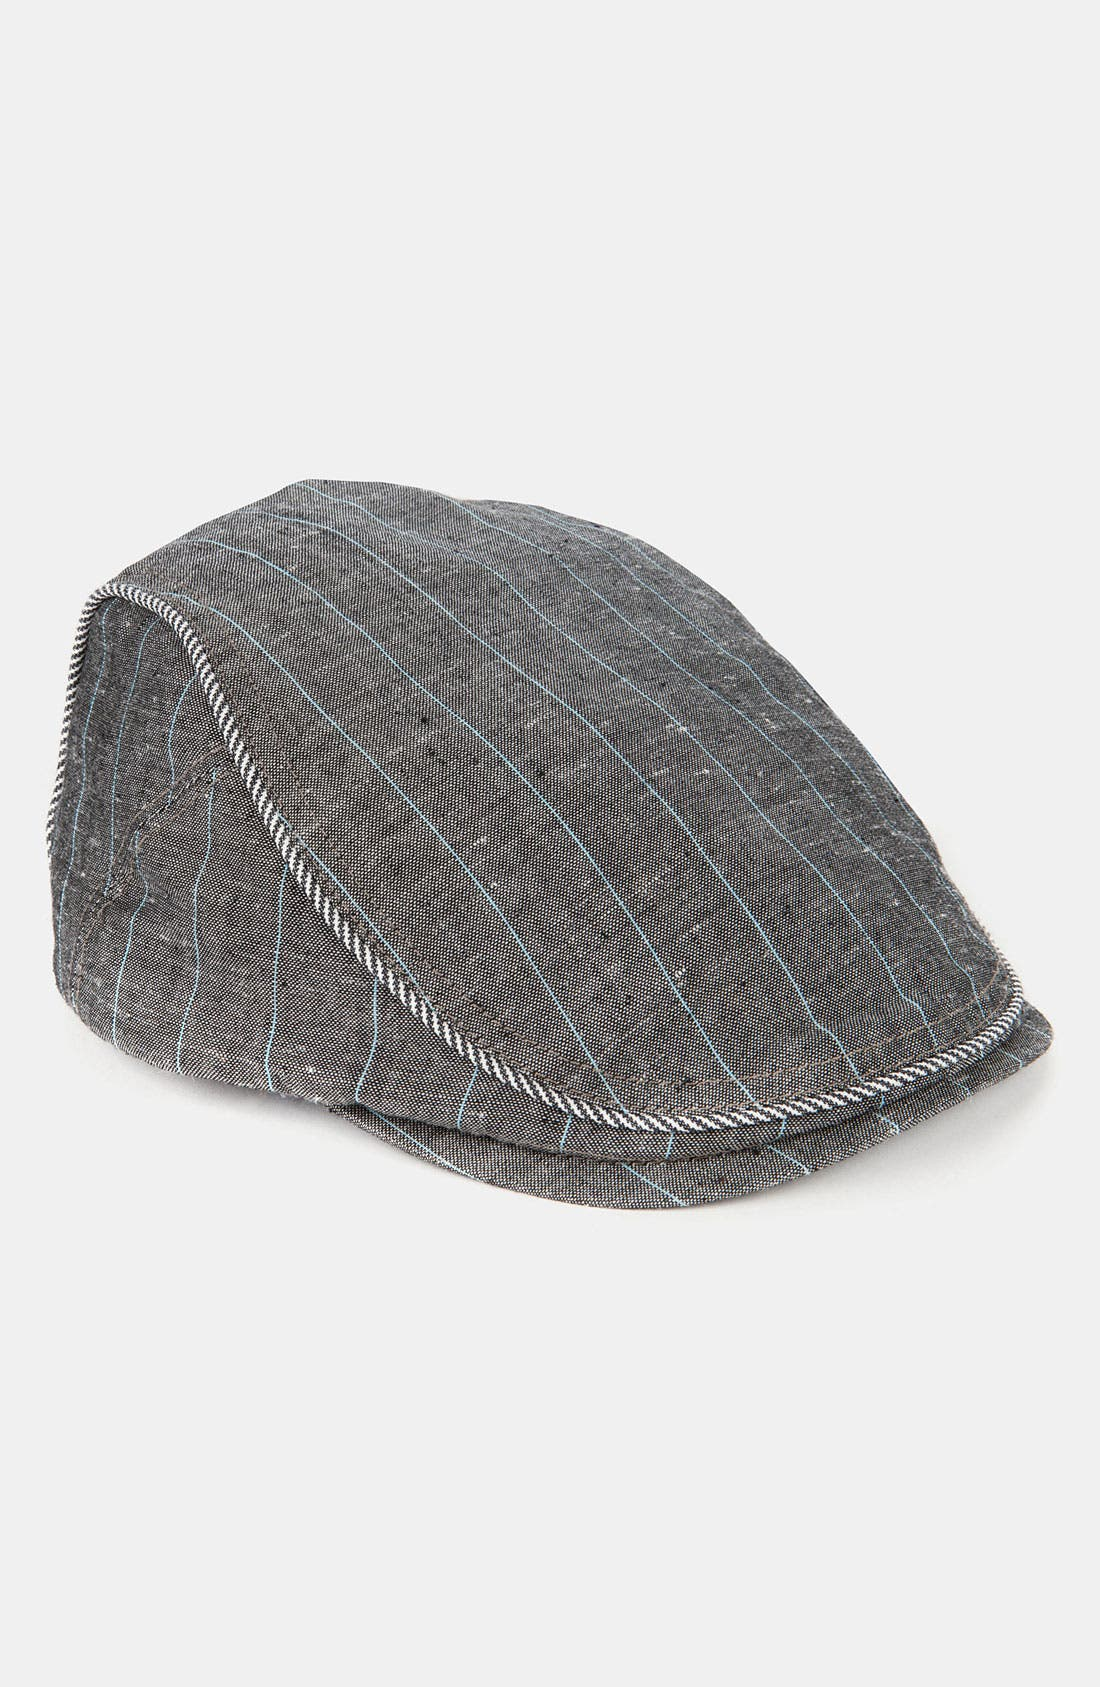 Main Image - Ted Baker London 'Purnsly' Driving Cap